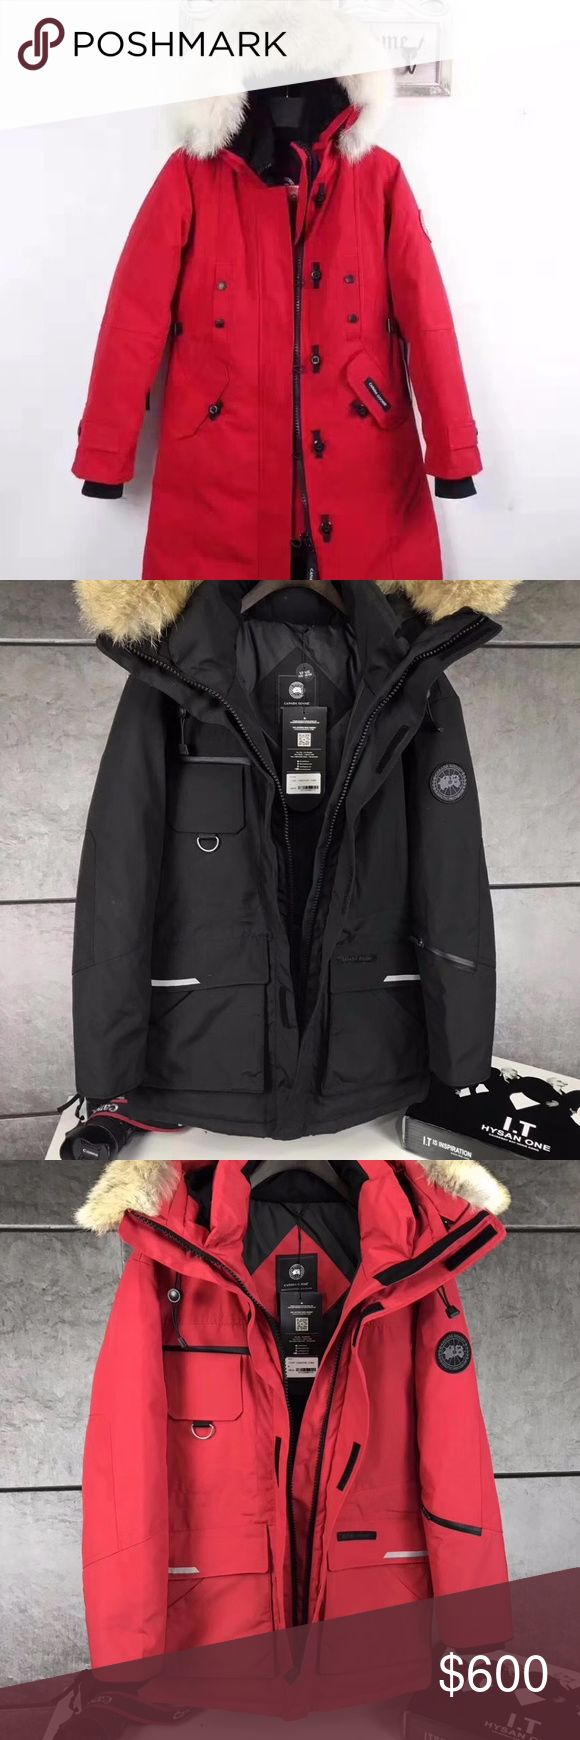 Canada Goose Parka Coat BRAND NEW IN BOX WITH ALL TAGS HAVE OTHER COLORS IN STOCK  CHECK INSTA @sup_brand_shop Canada Goose Jackets & Coats